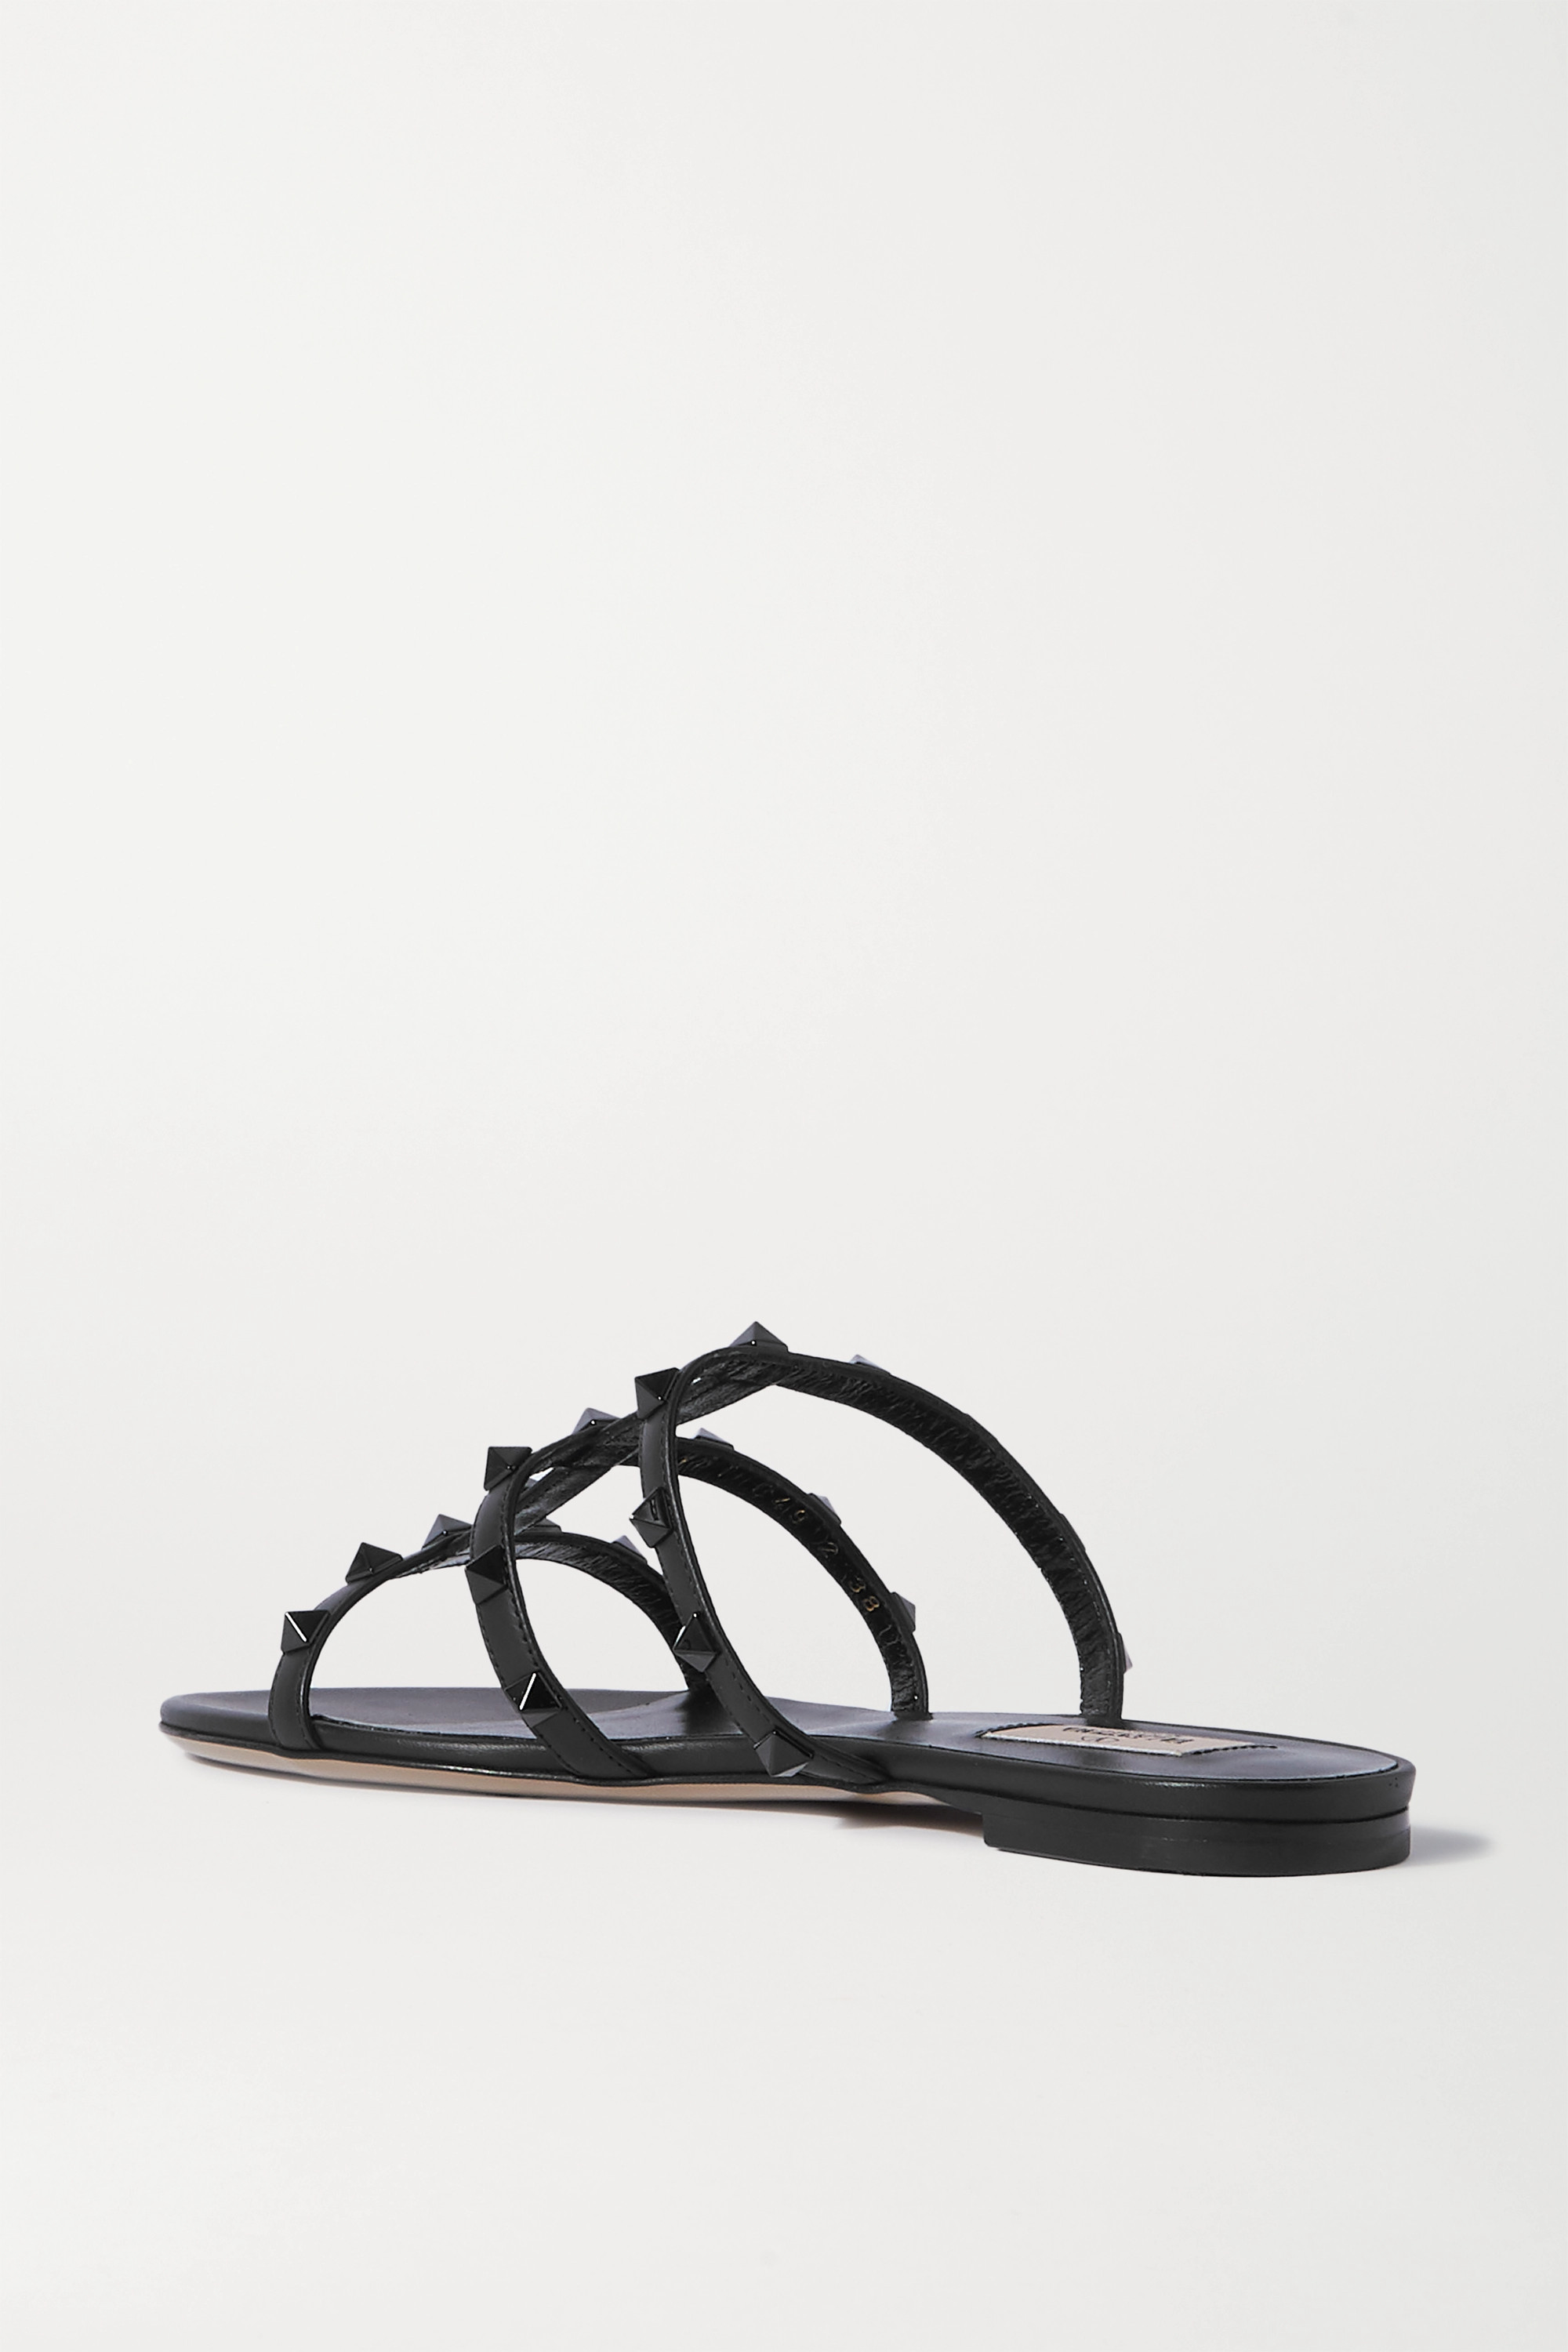 VALENTINO Valentino Garavani  Rockstud leather sandals